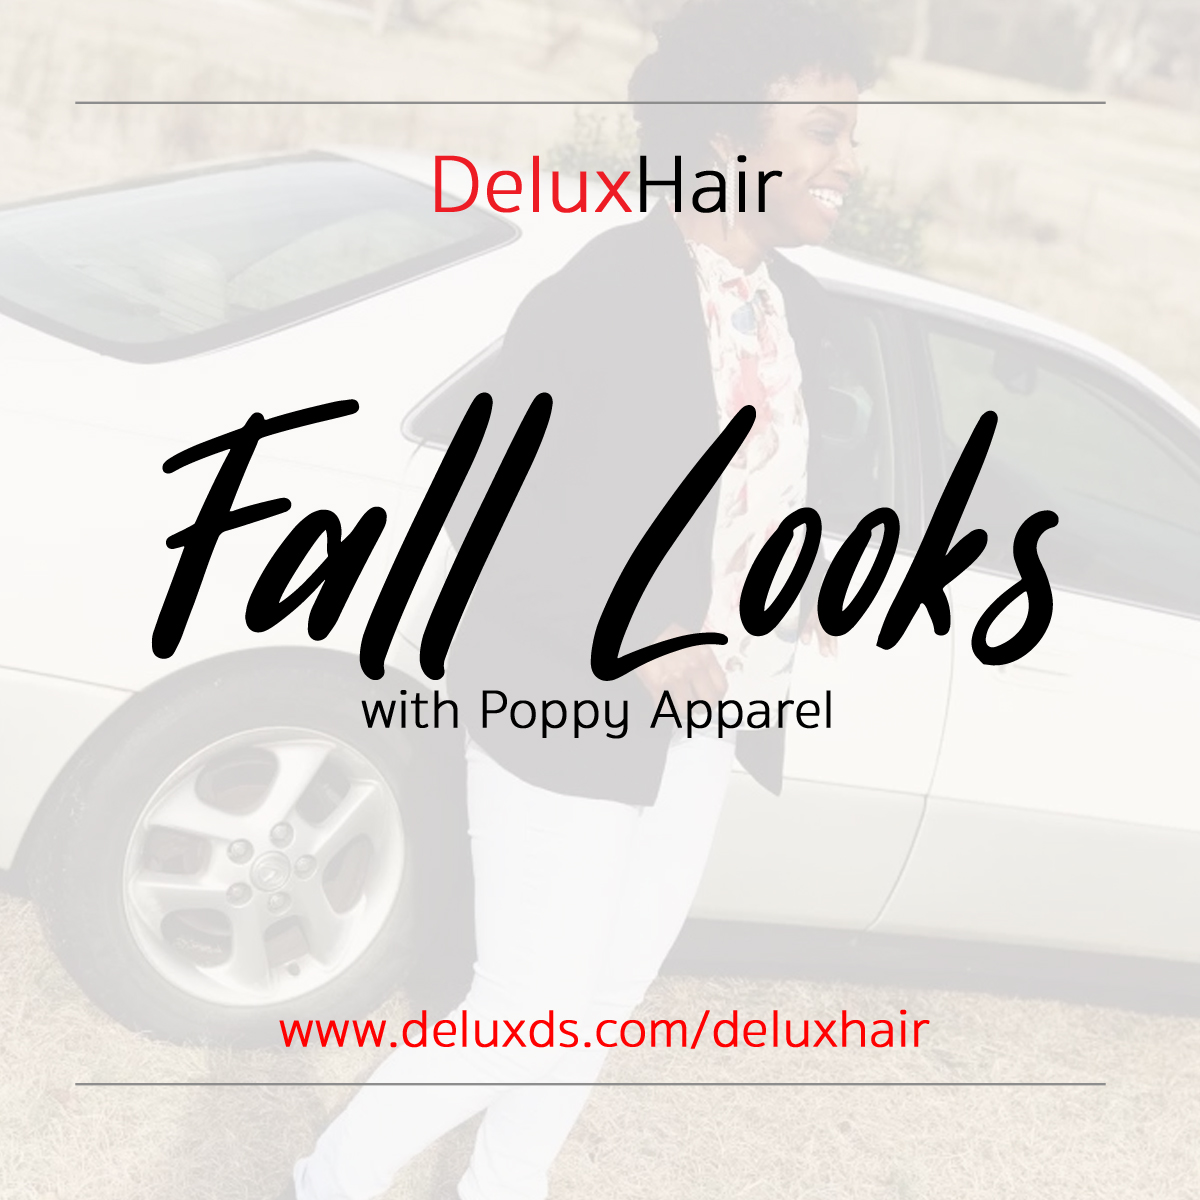 DeluxHair - Fall Looks with Poppy's Apparel